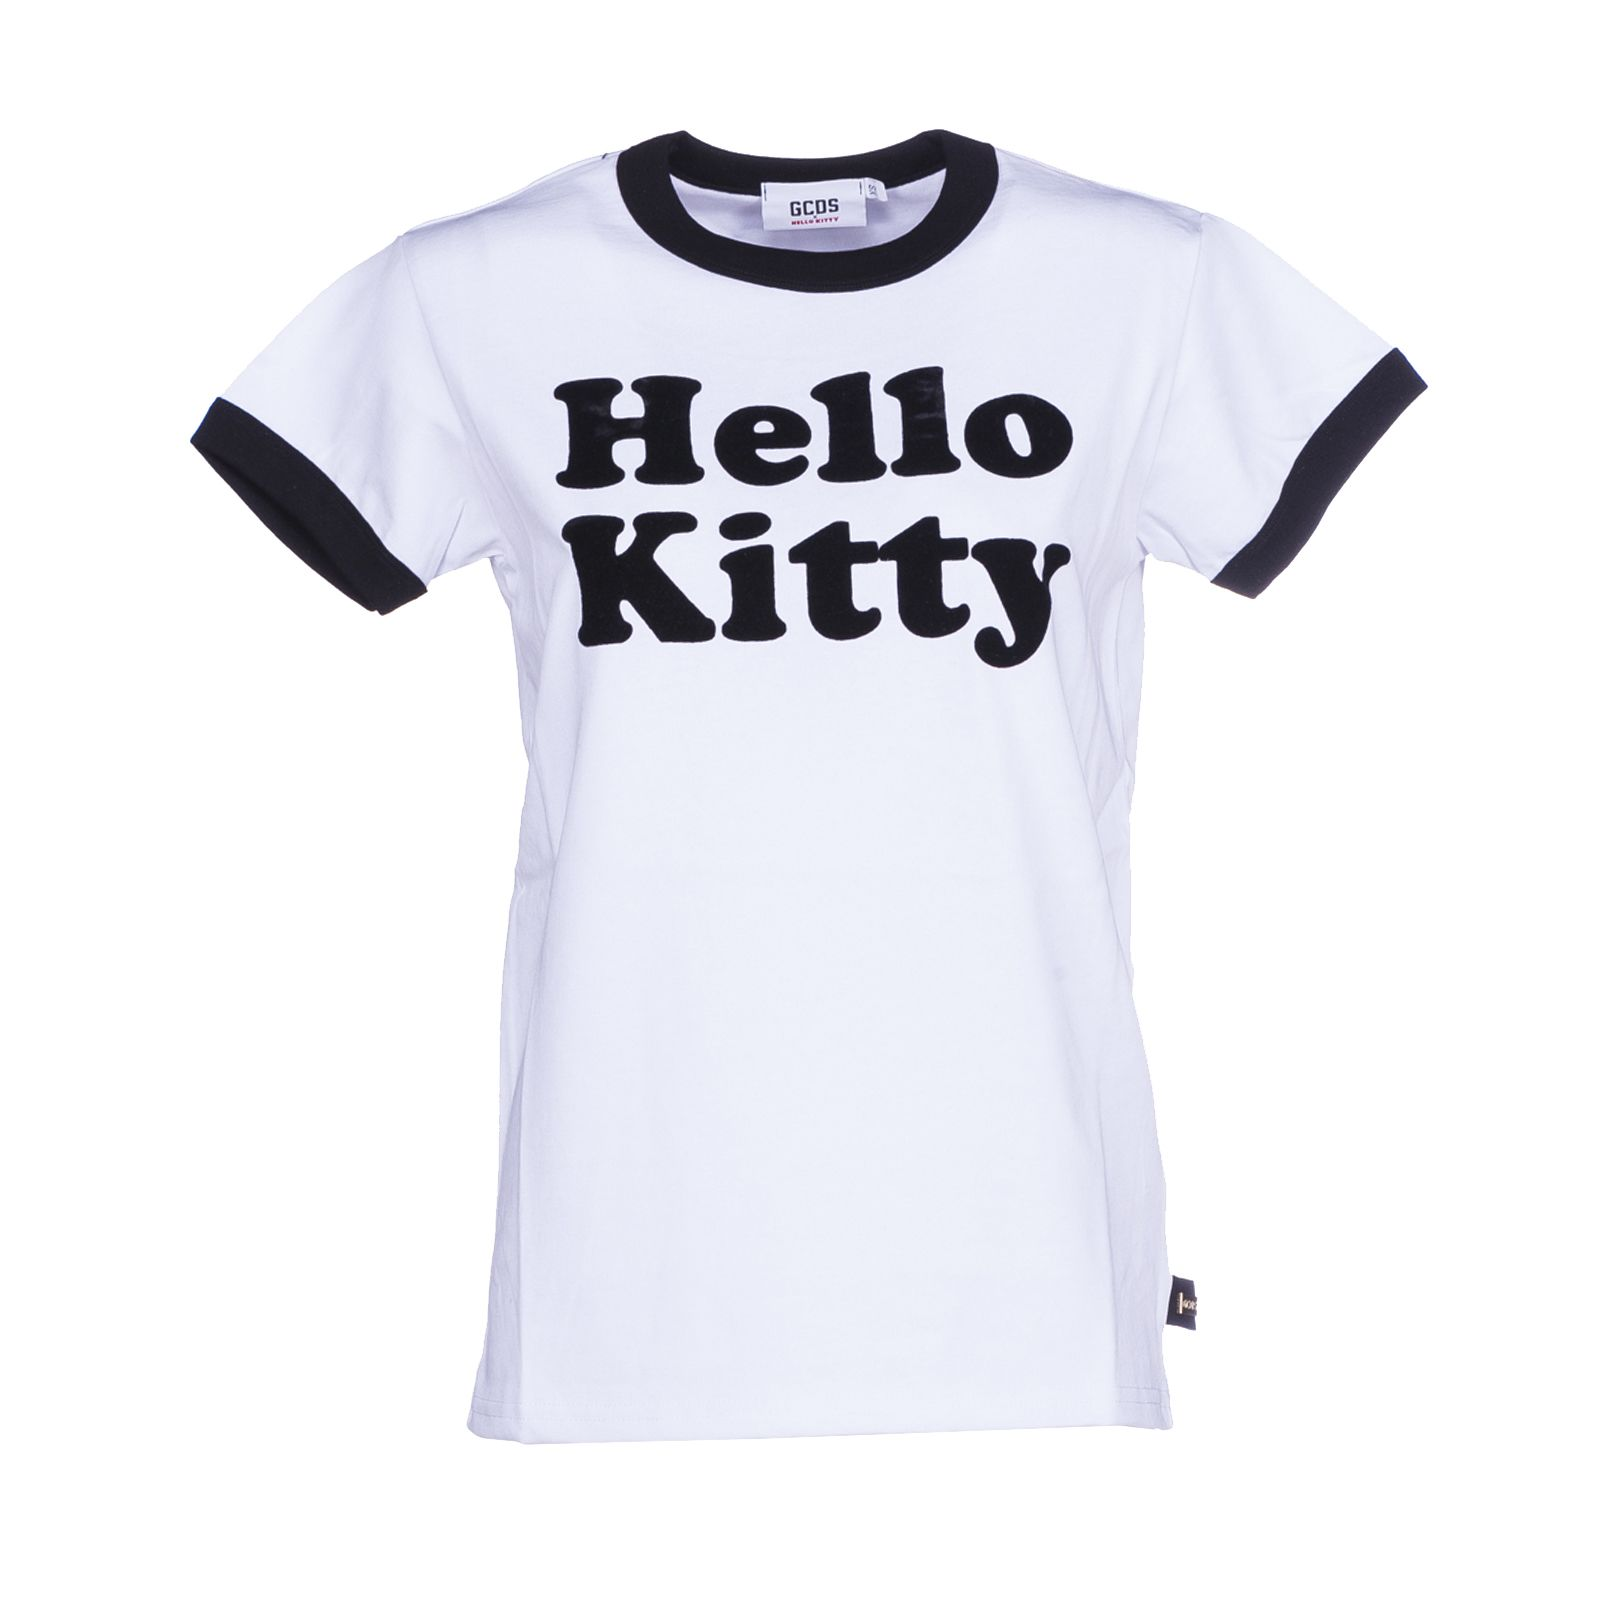 Gcds Hello Kitty T-shirt